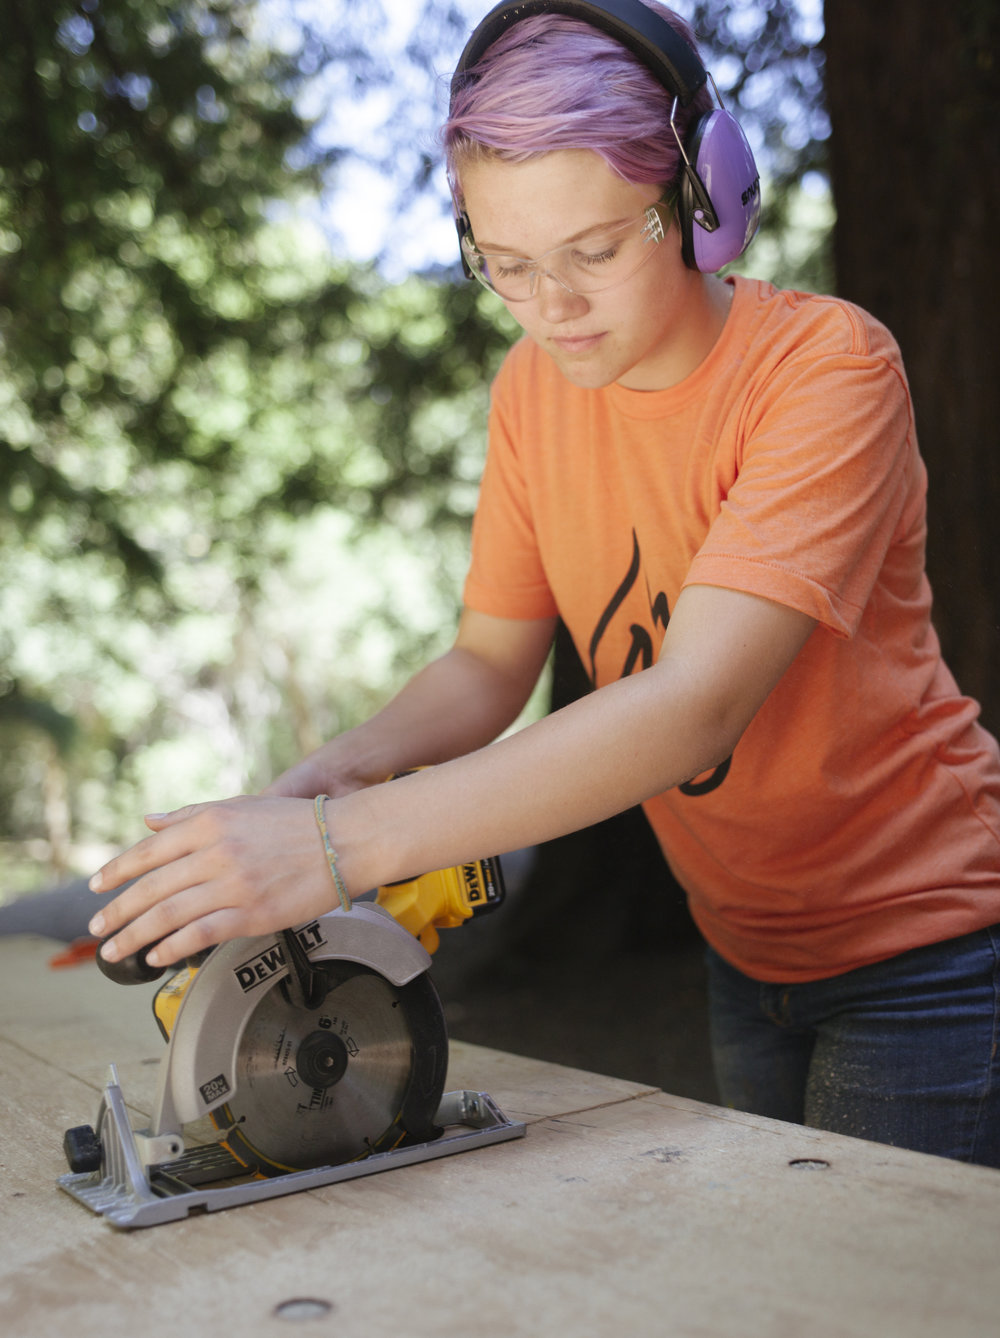 Anna on the Circular Saw